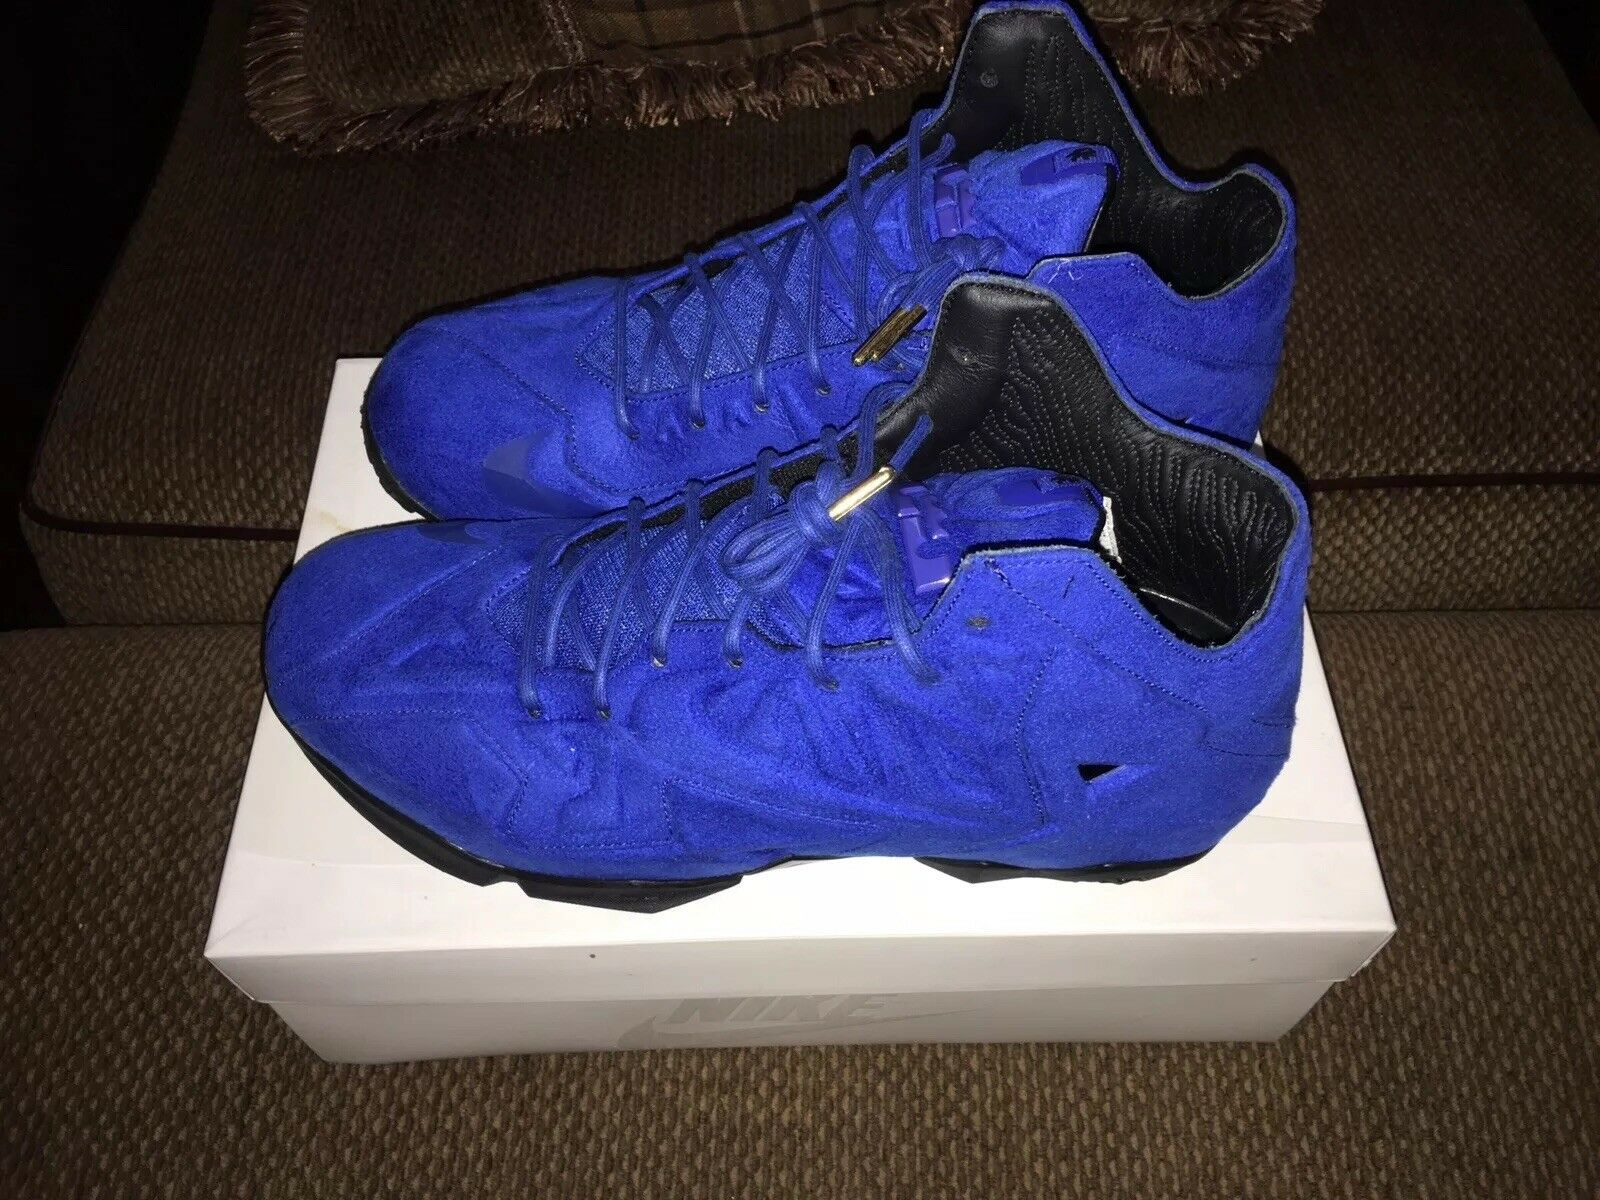 Nike Lebron XI (11) EXT Blue Suede Size 11.5 Brand New.